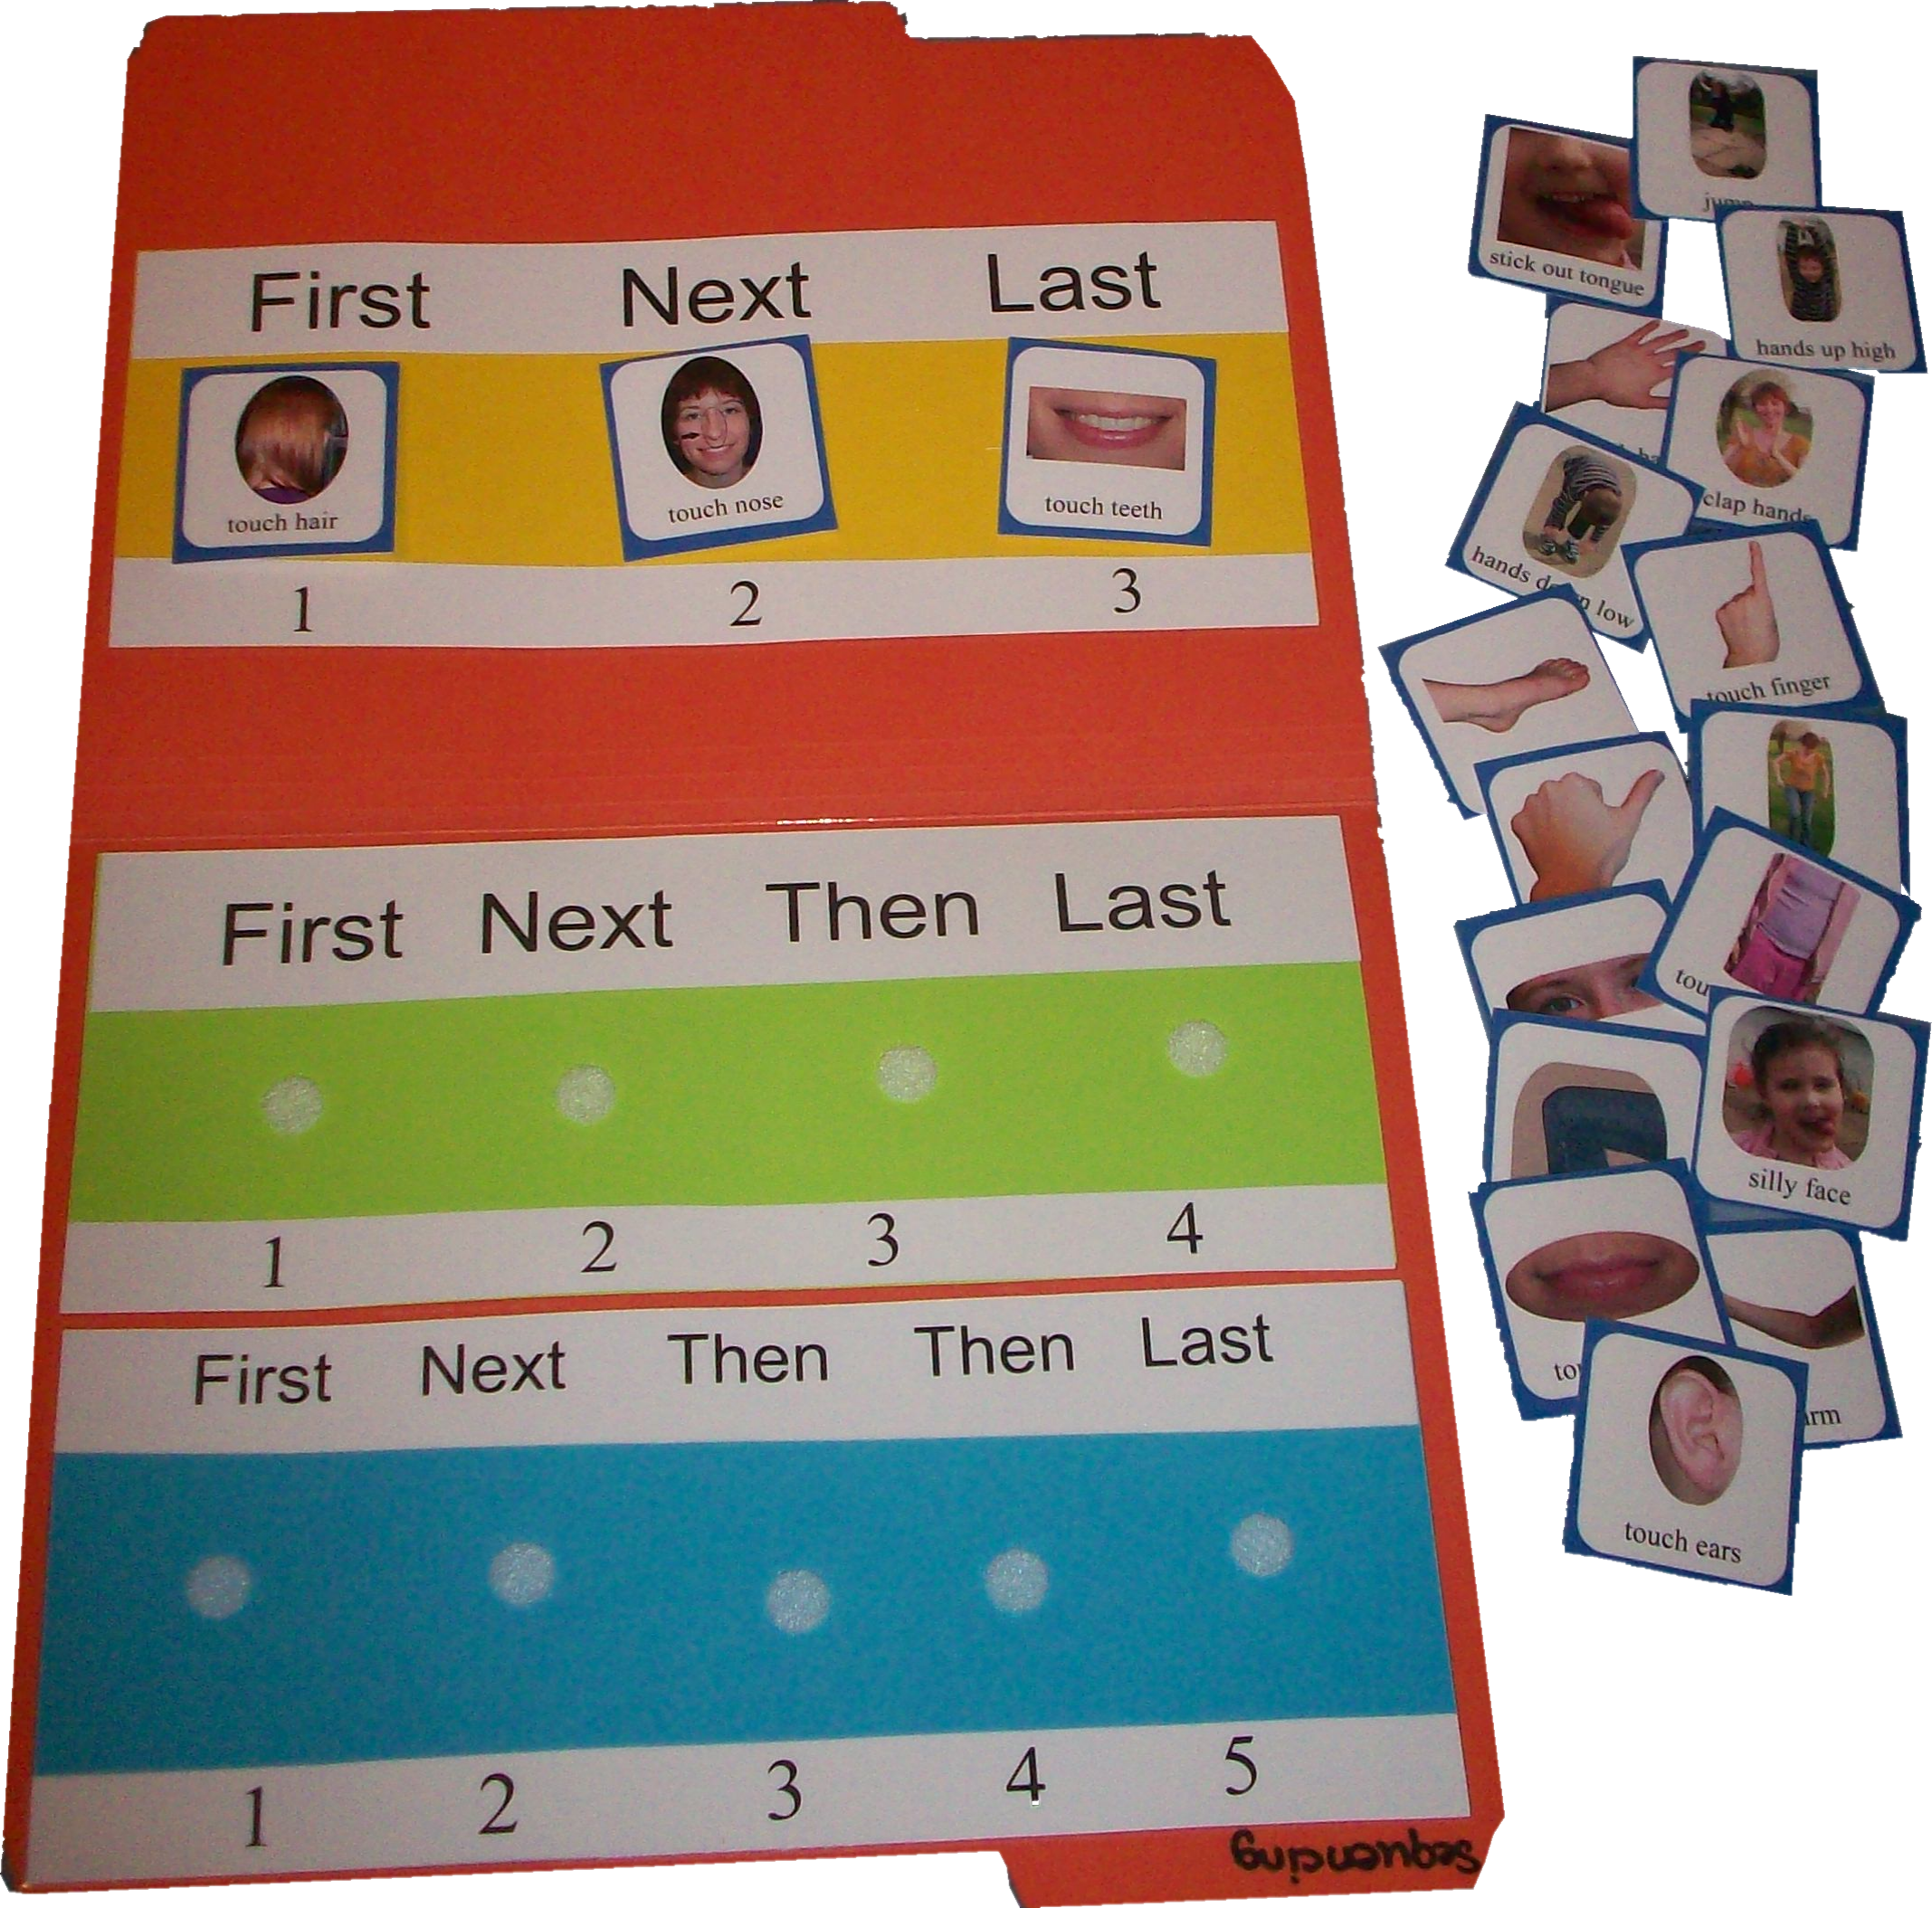 Following Directions Card Set Following Directions Activity Card Set To Accompany 3 5 Step